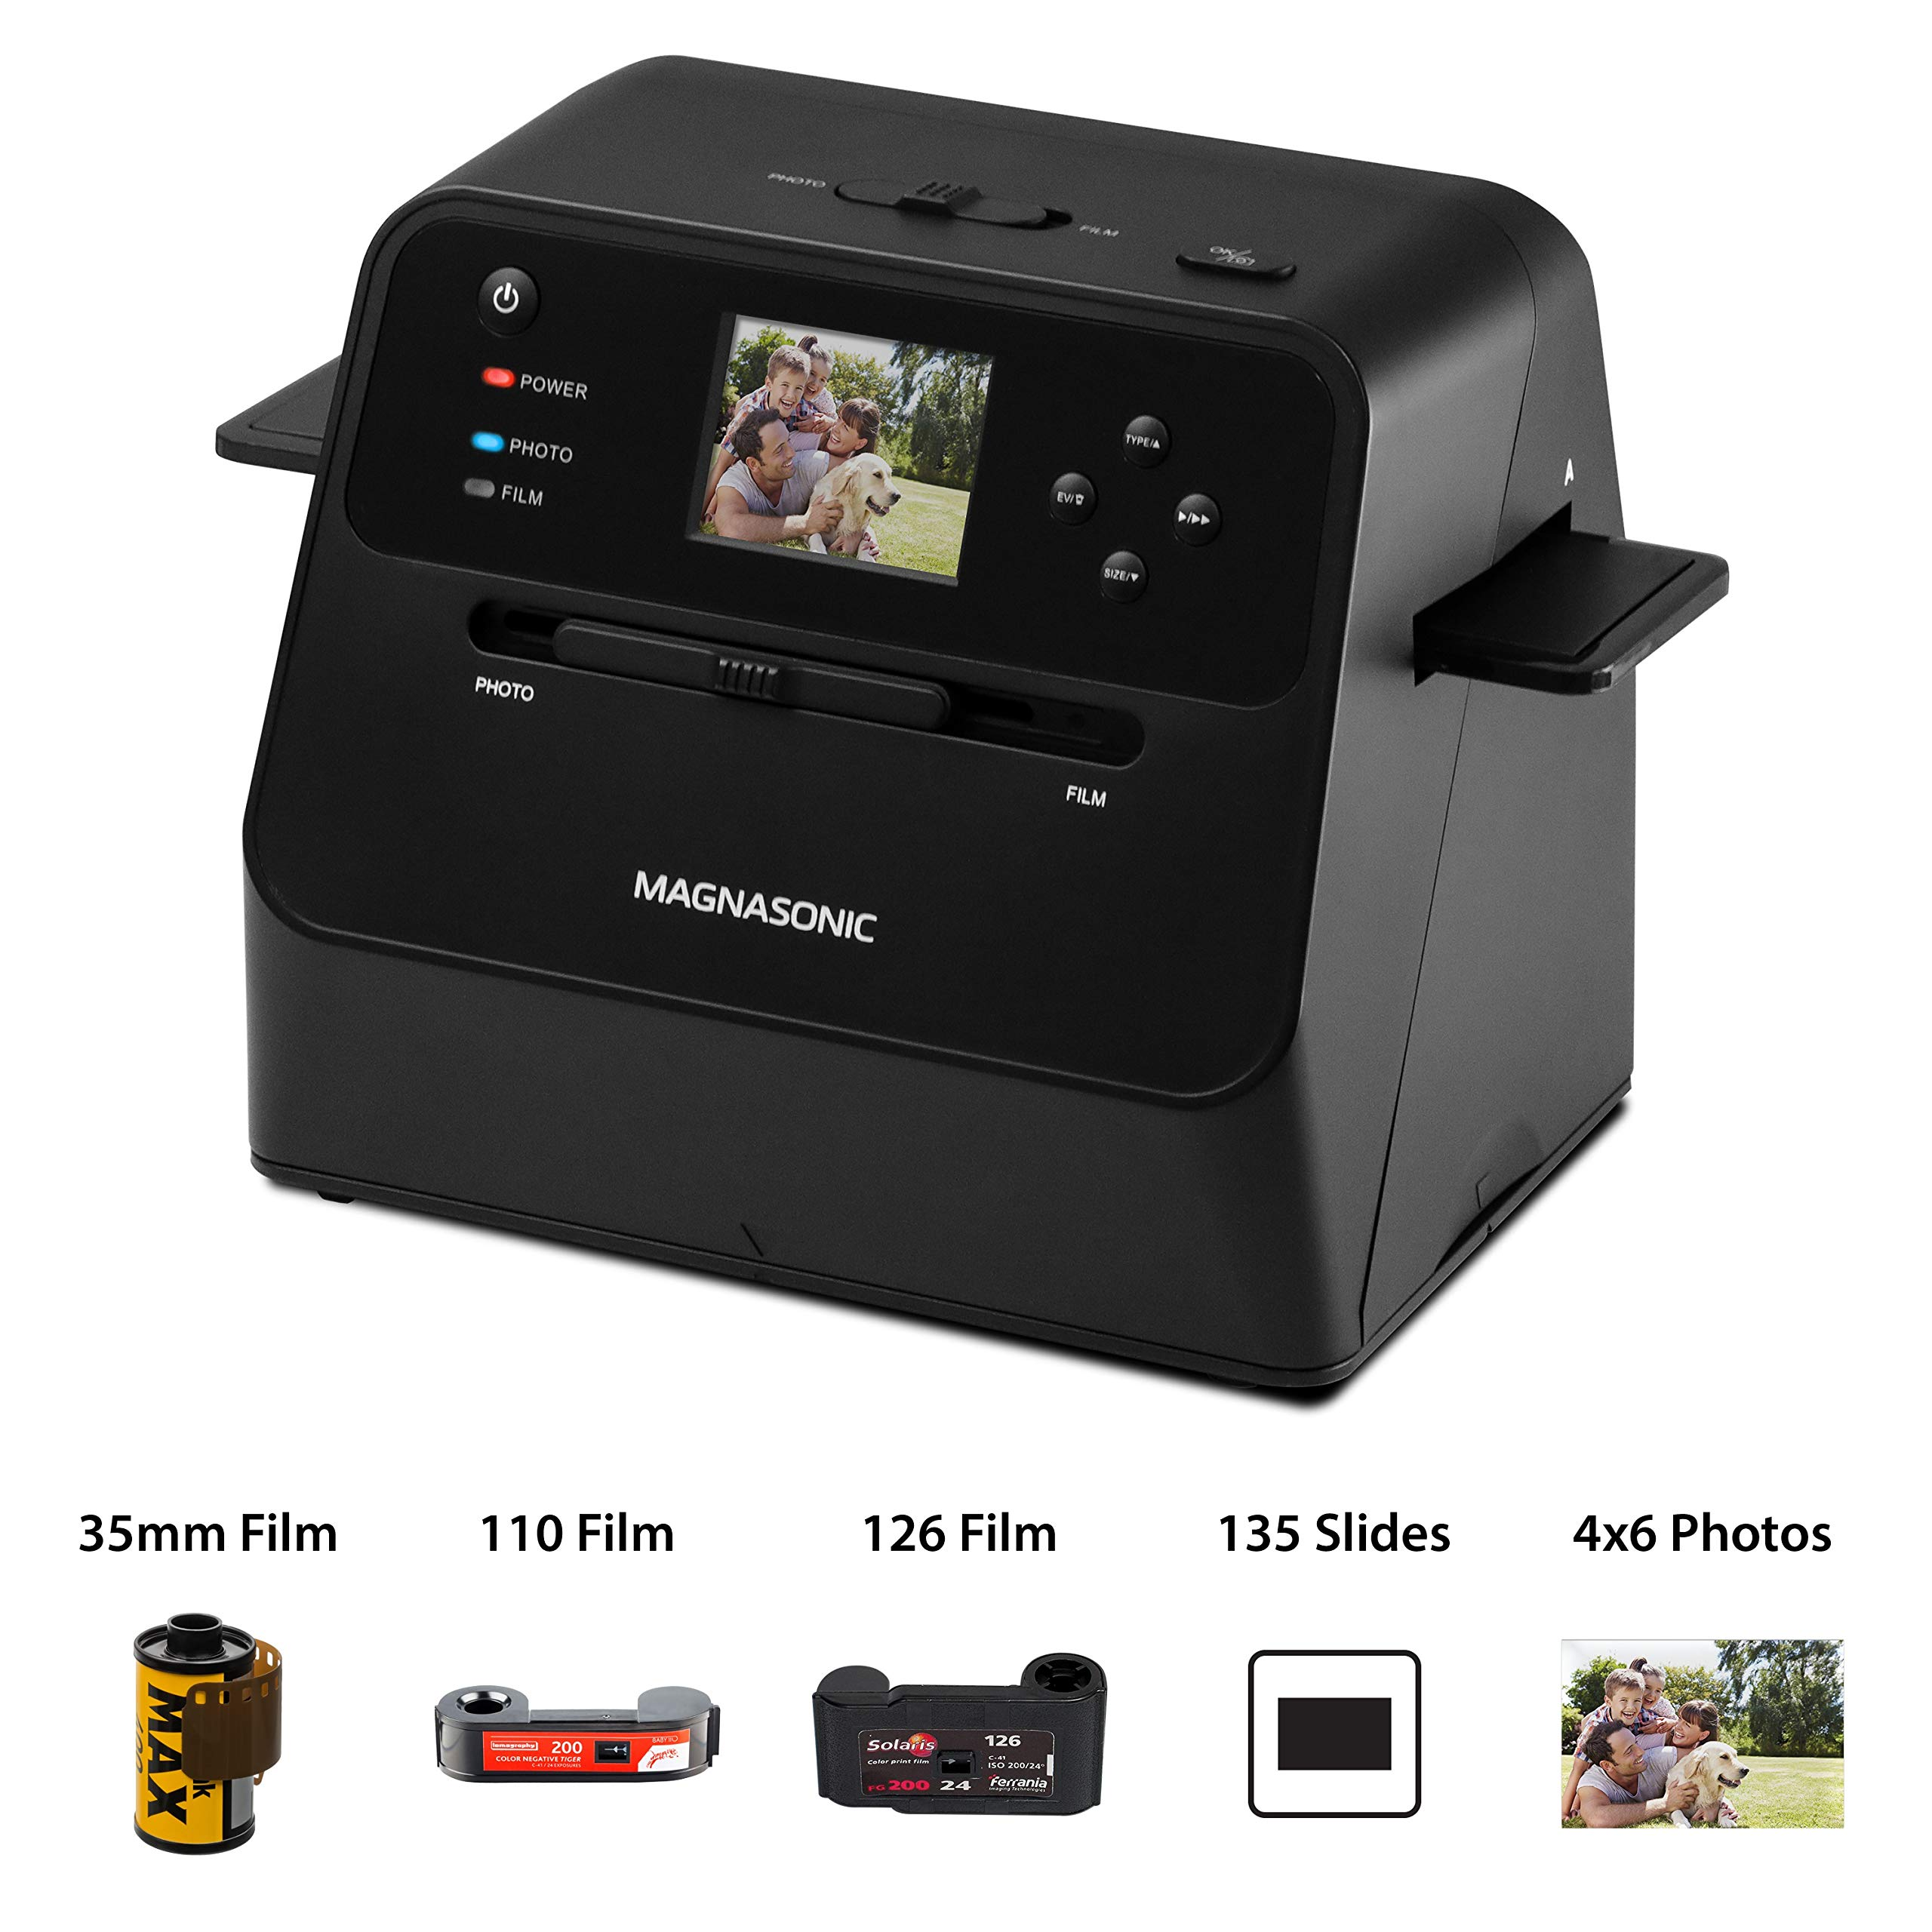 Magnasonic All-in-One Film & Photo Scanner, 14MP Resolution, Converts 4x6 Photos, 35mm/110/126/Super 8 Film & 135 Slides into Digital JPEGs, Vibrant 2.4'' LCD Screen, Fast Scanning (FS60)